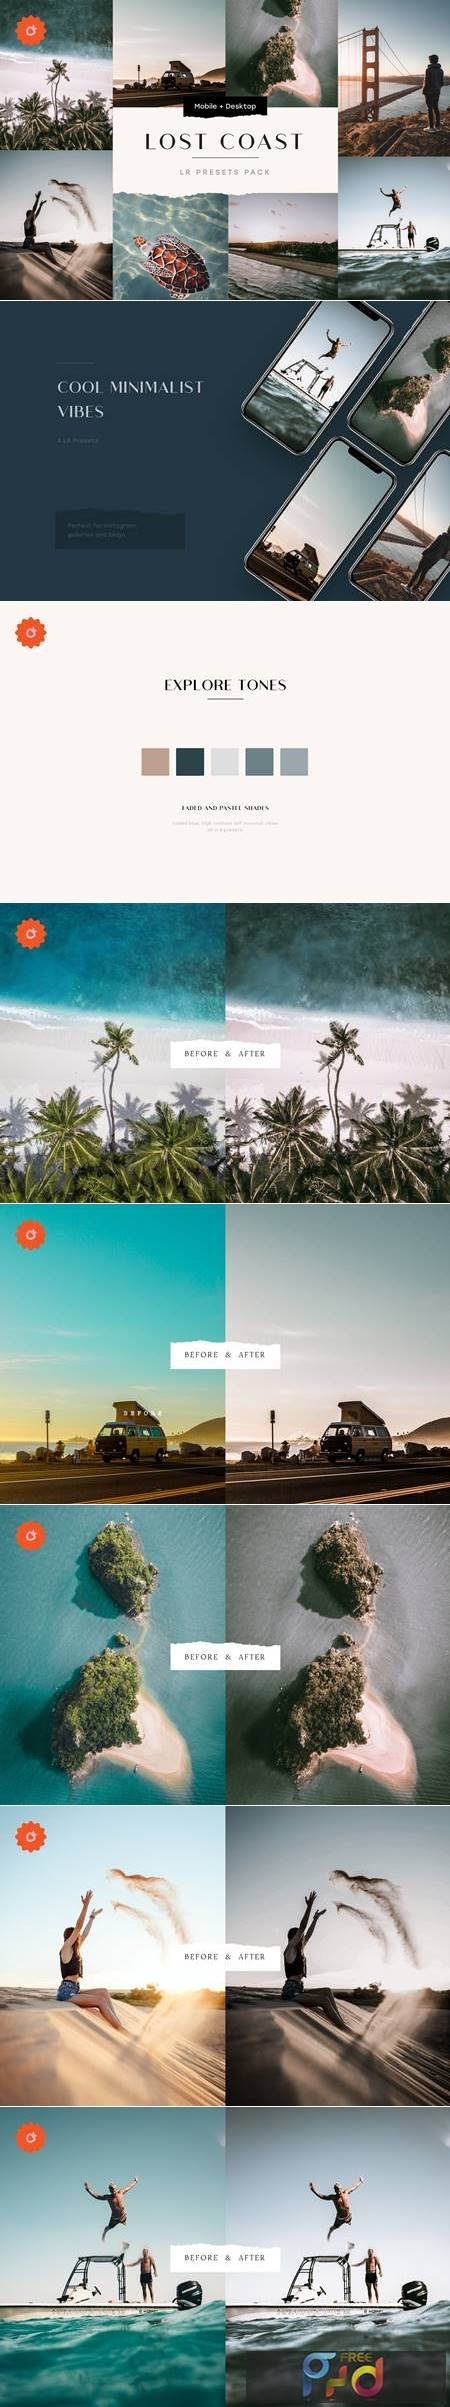 8 Faded Lightroom Presets Bundle 5187672 1